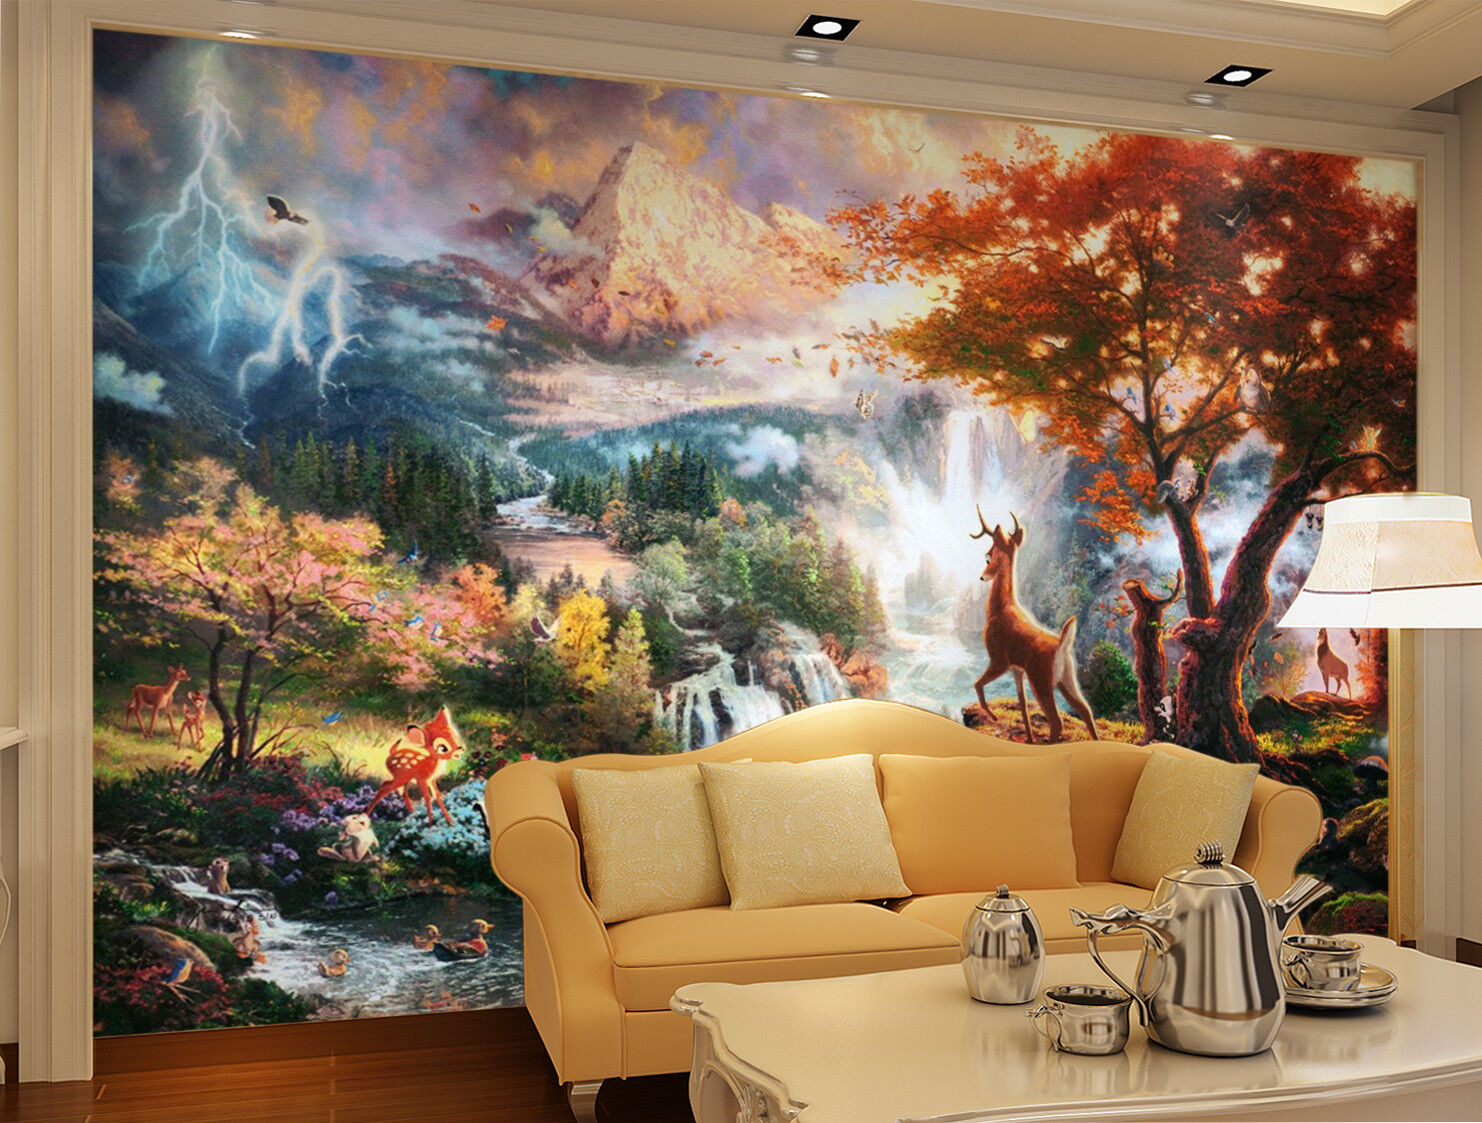 3D Mount Deer Deer Deer 462 Wallpaper Murals Wall Print Wallpaper Mural AJ WALL AU Kyra 3b446b